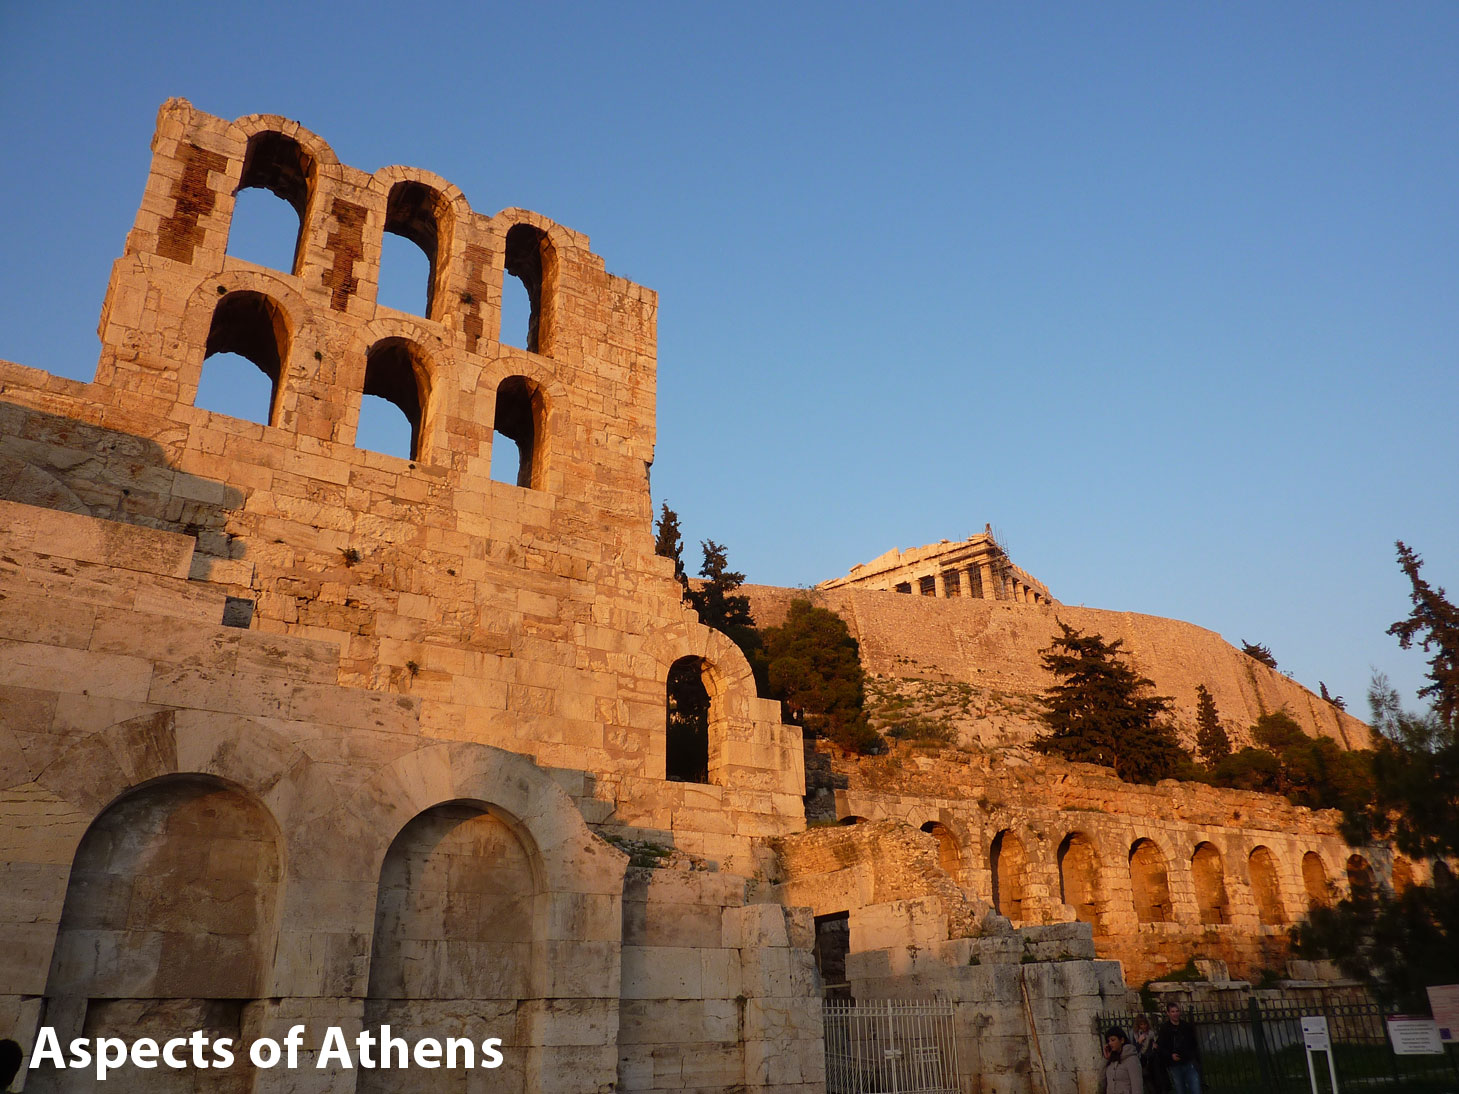 Herod Atticus Odeon and the Acropolis